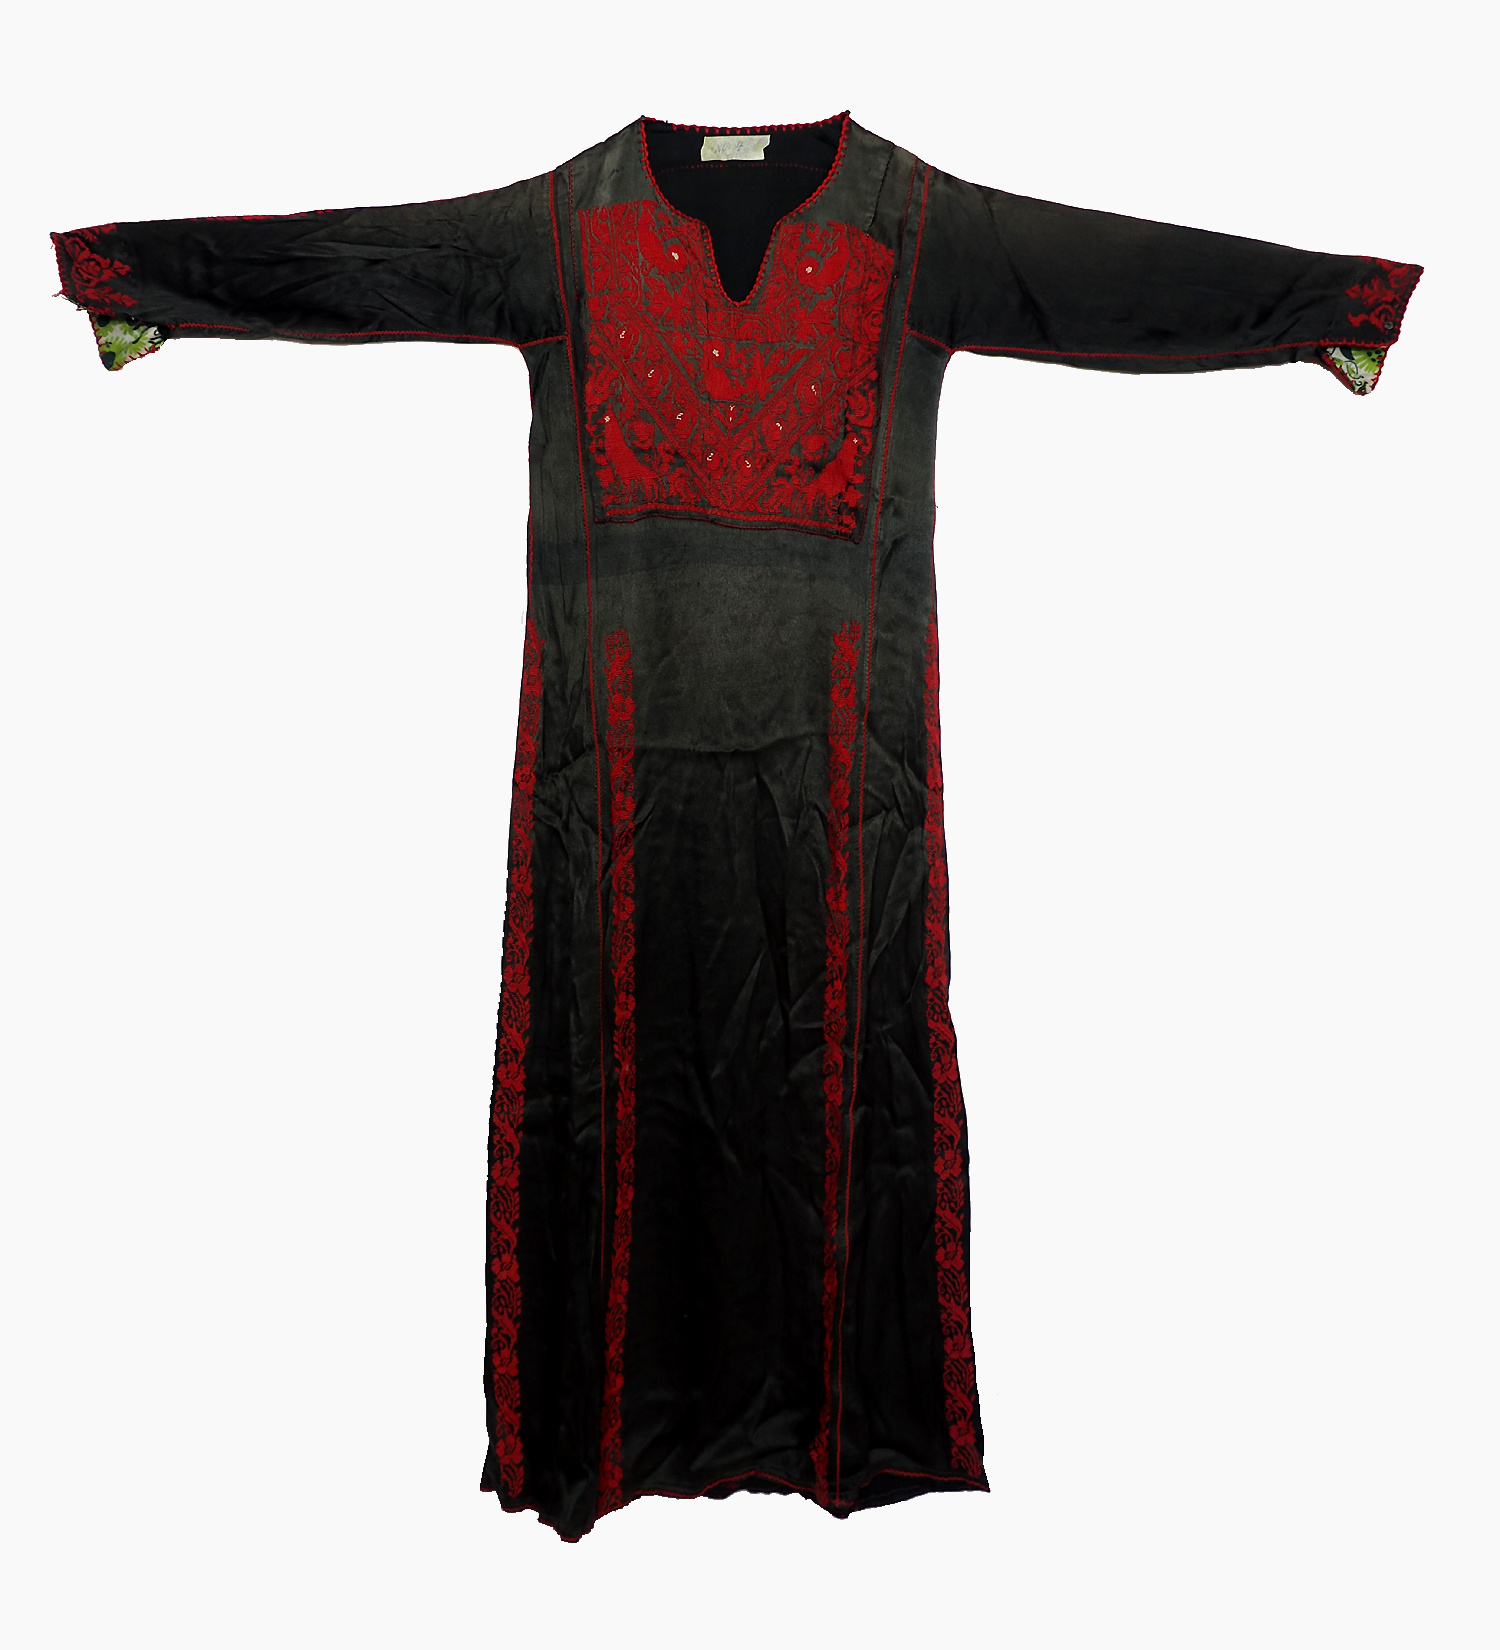 Palestinian girls embroidered ethnic dress No:4